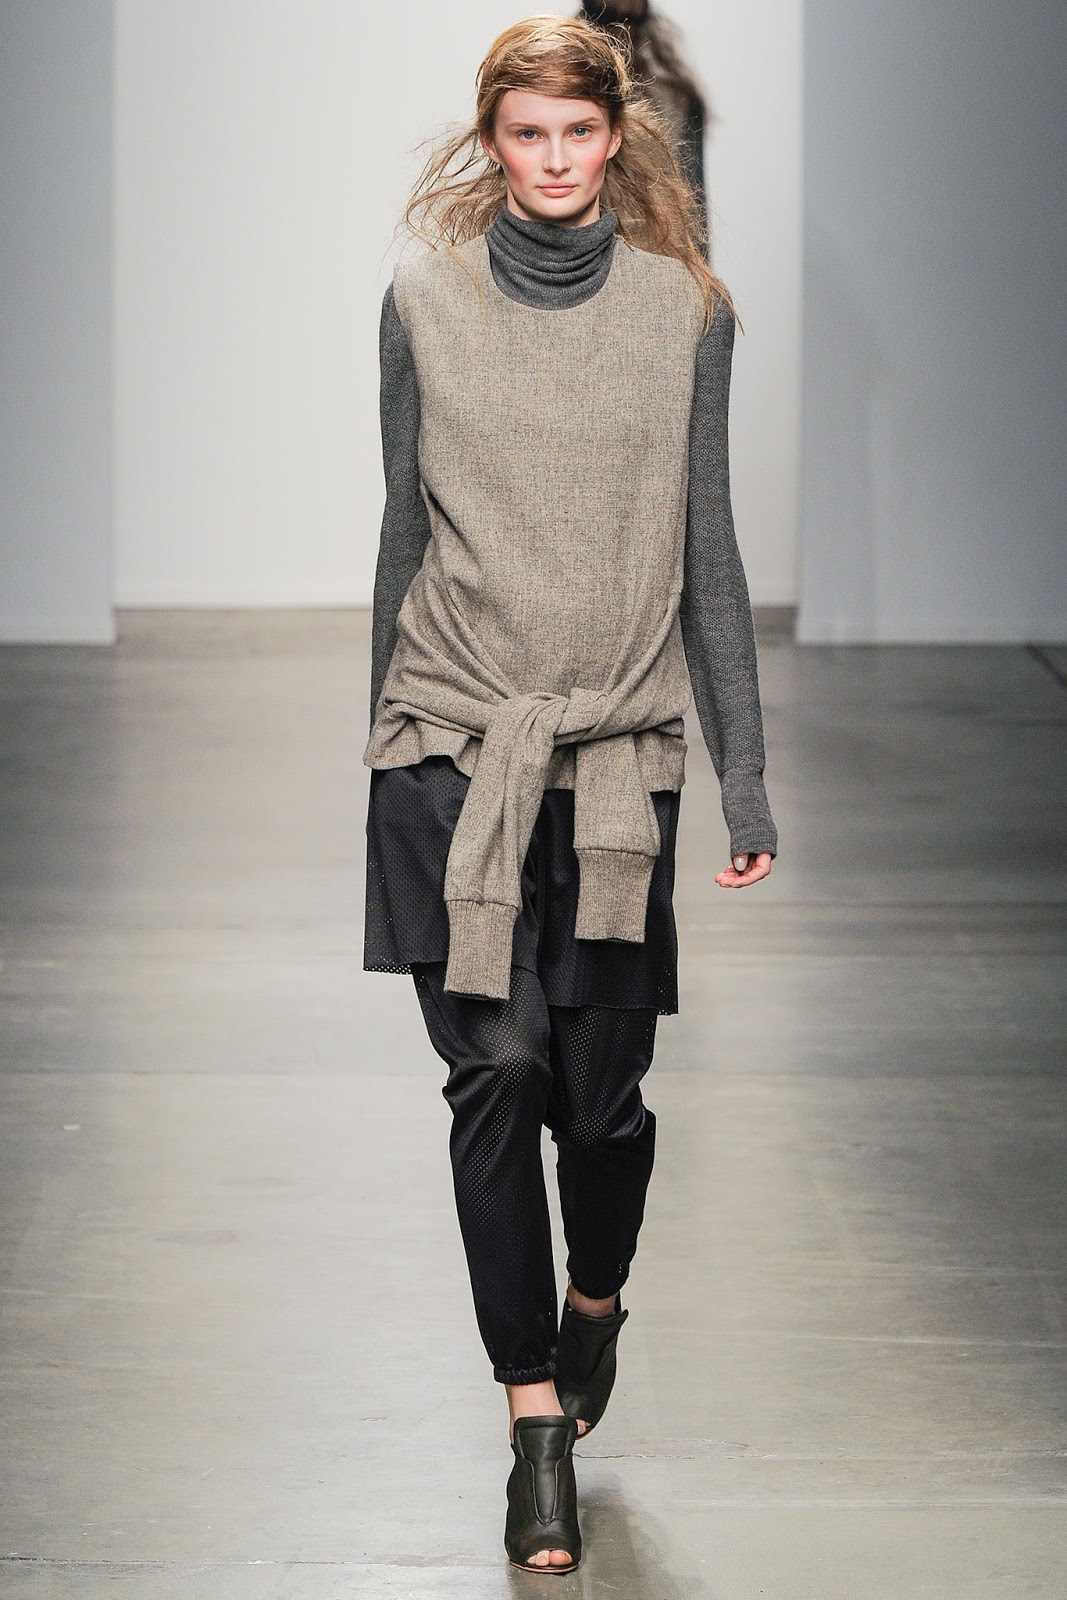 A Detacher Fall/Winter 2014